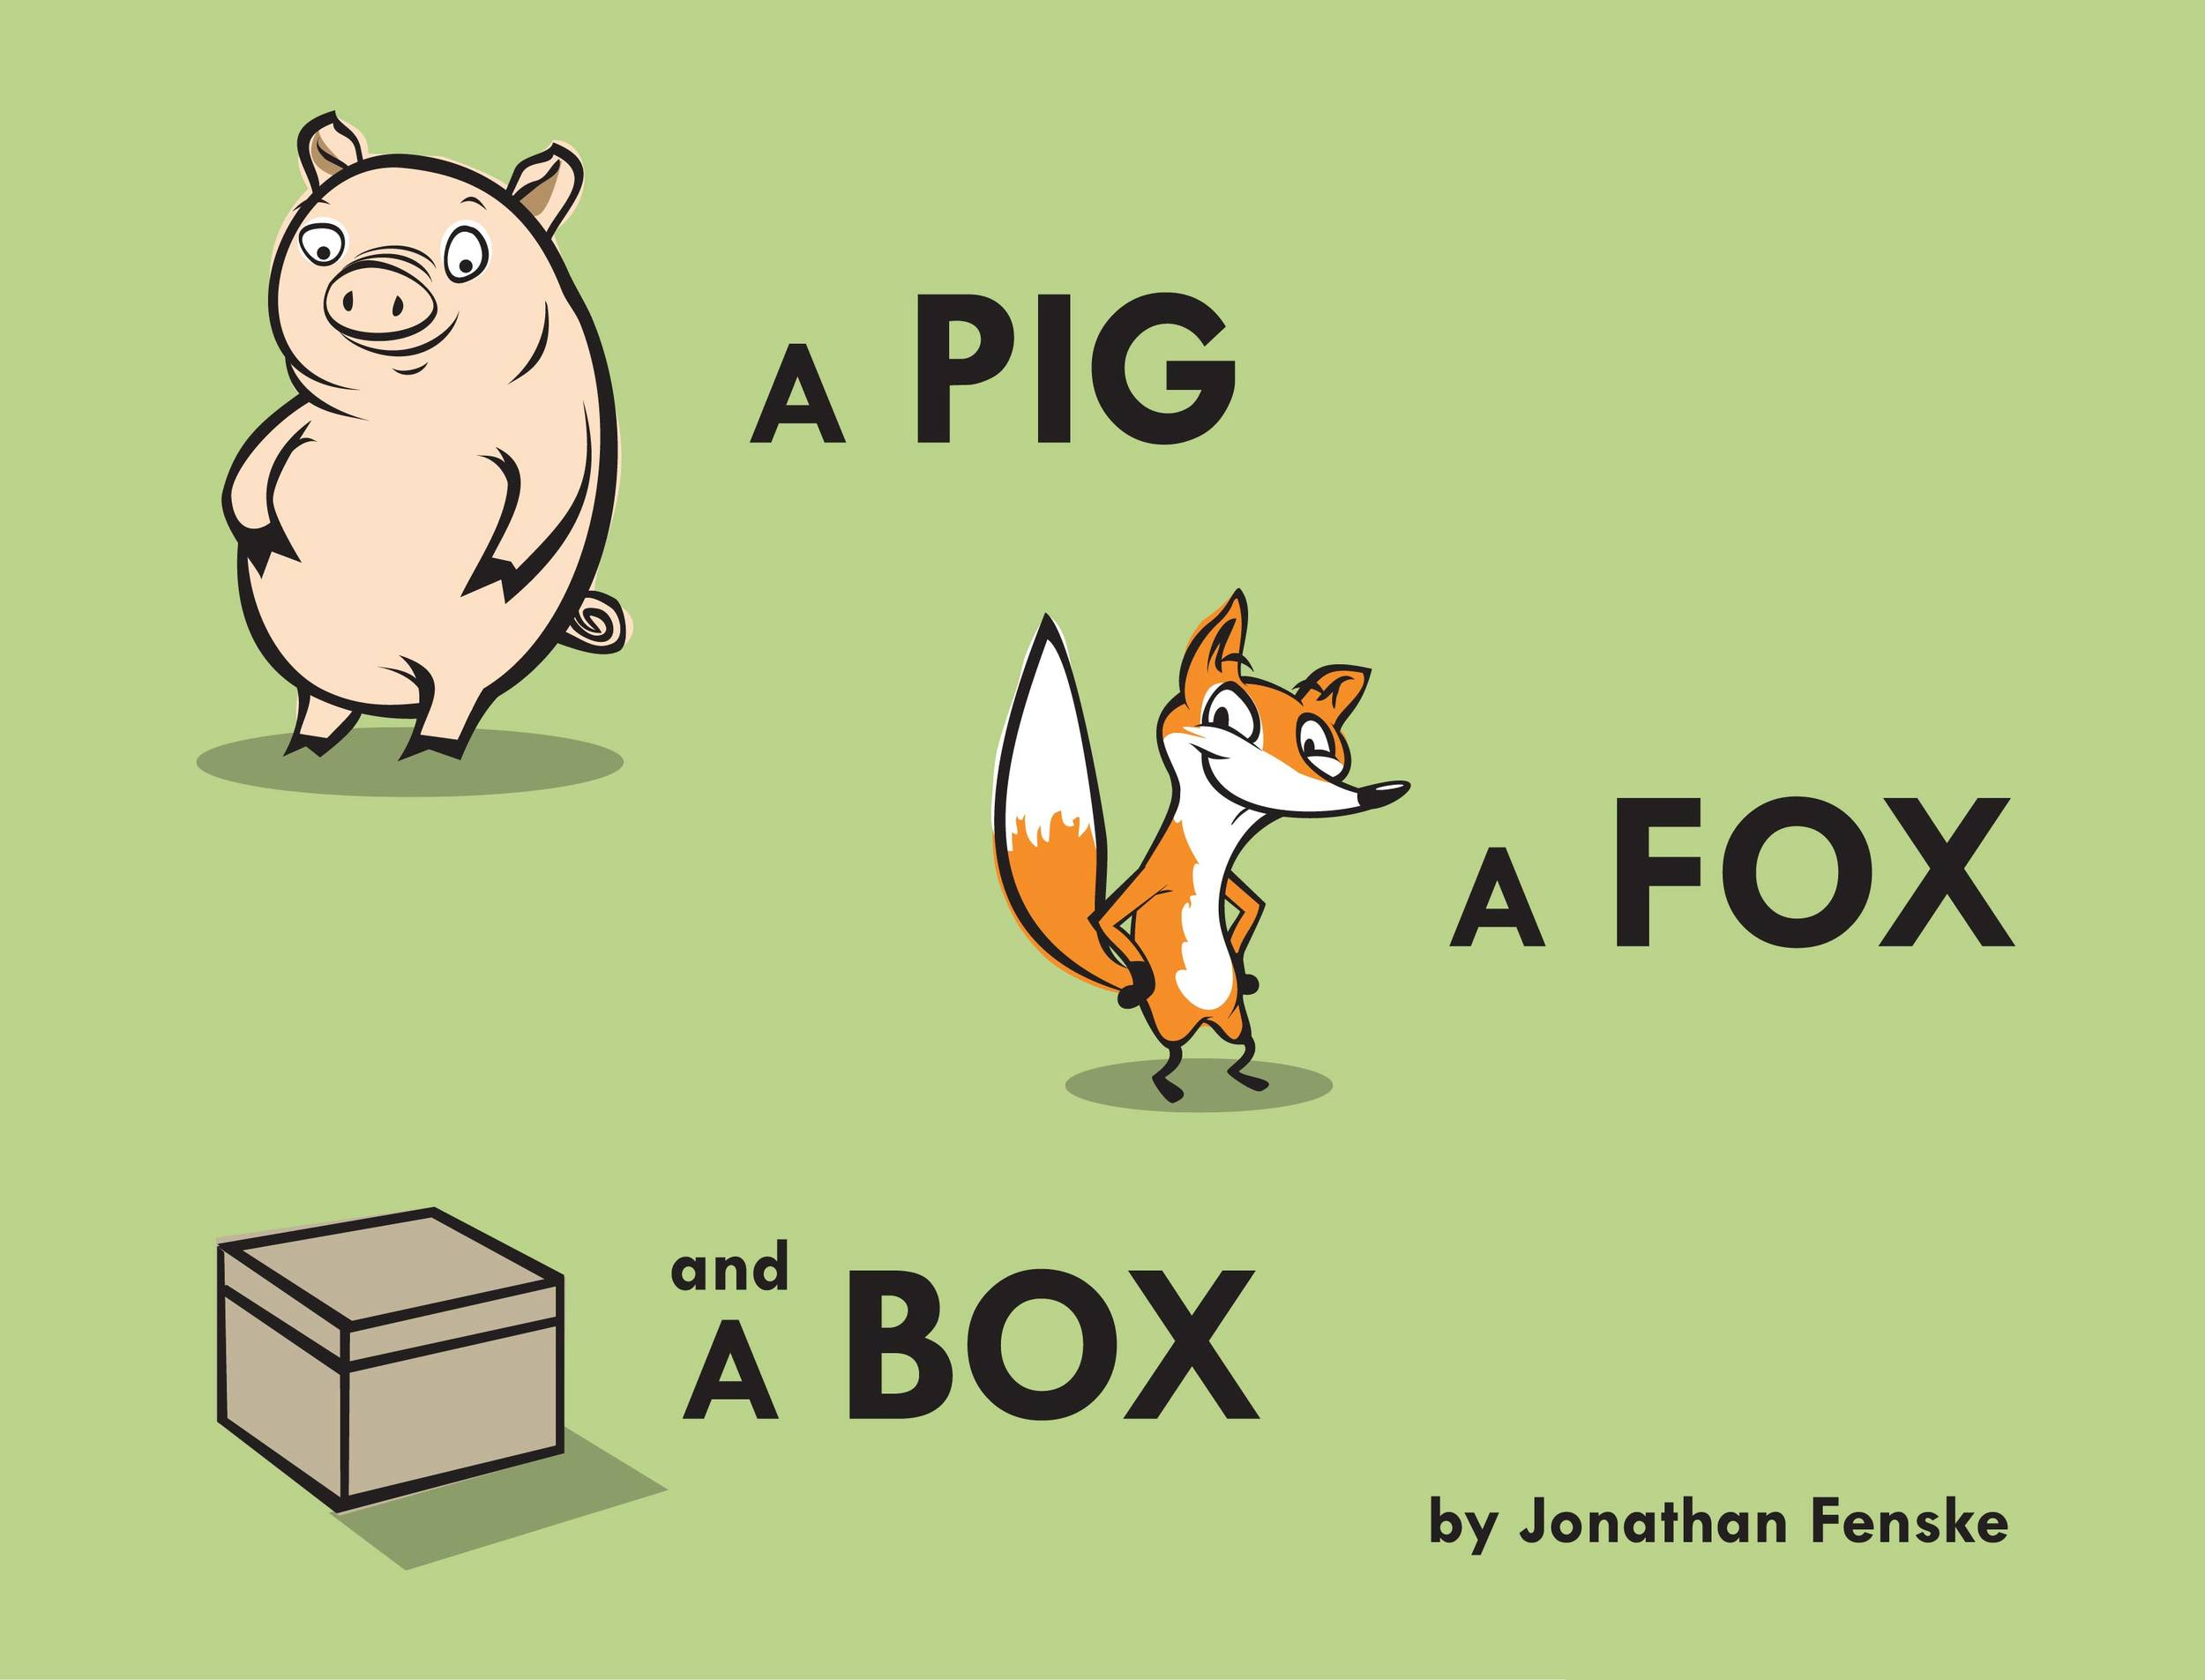 An image of Jonathan Fenske's children's book A Pig A Fox and A Box